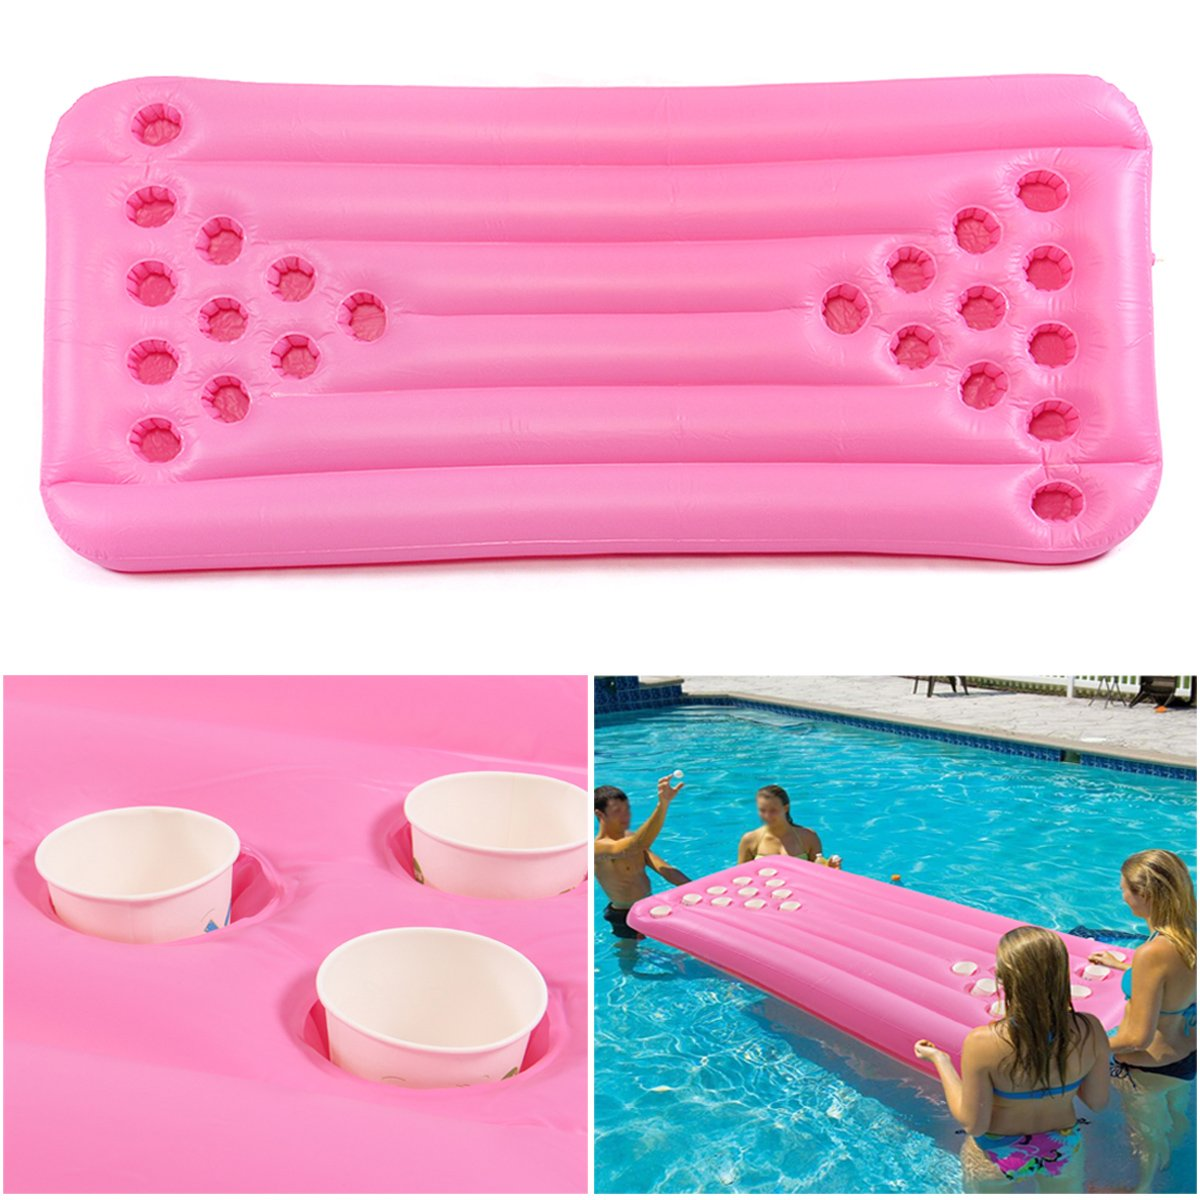 Water Sports 180x80x15CM 22 Holes WD Inflatable Float Beer Game Table Swimming Pool Water Play Party WD-007-268